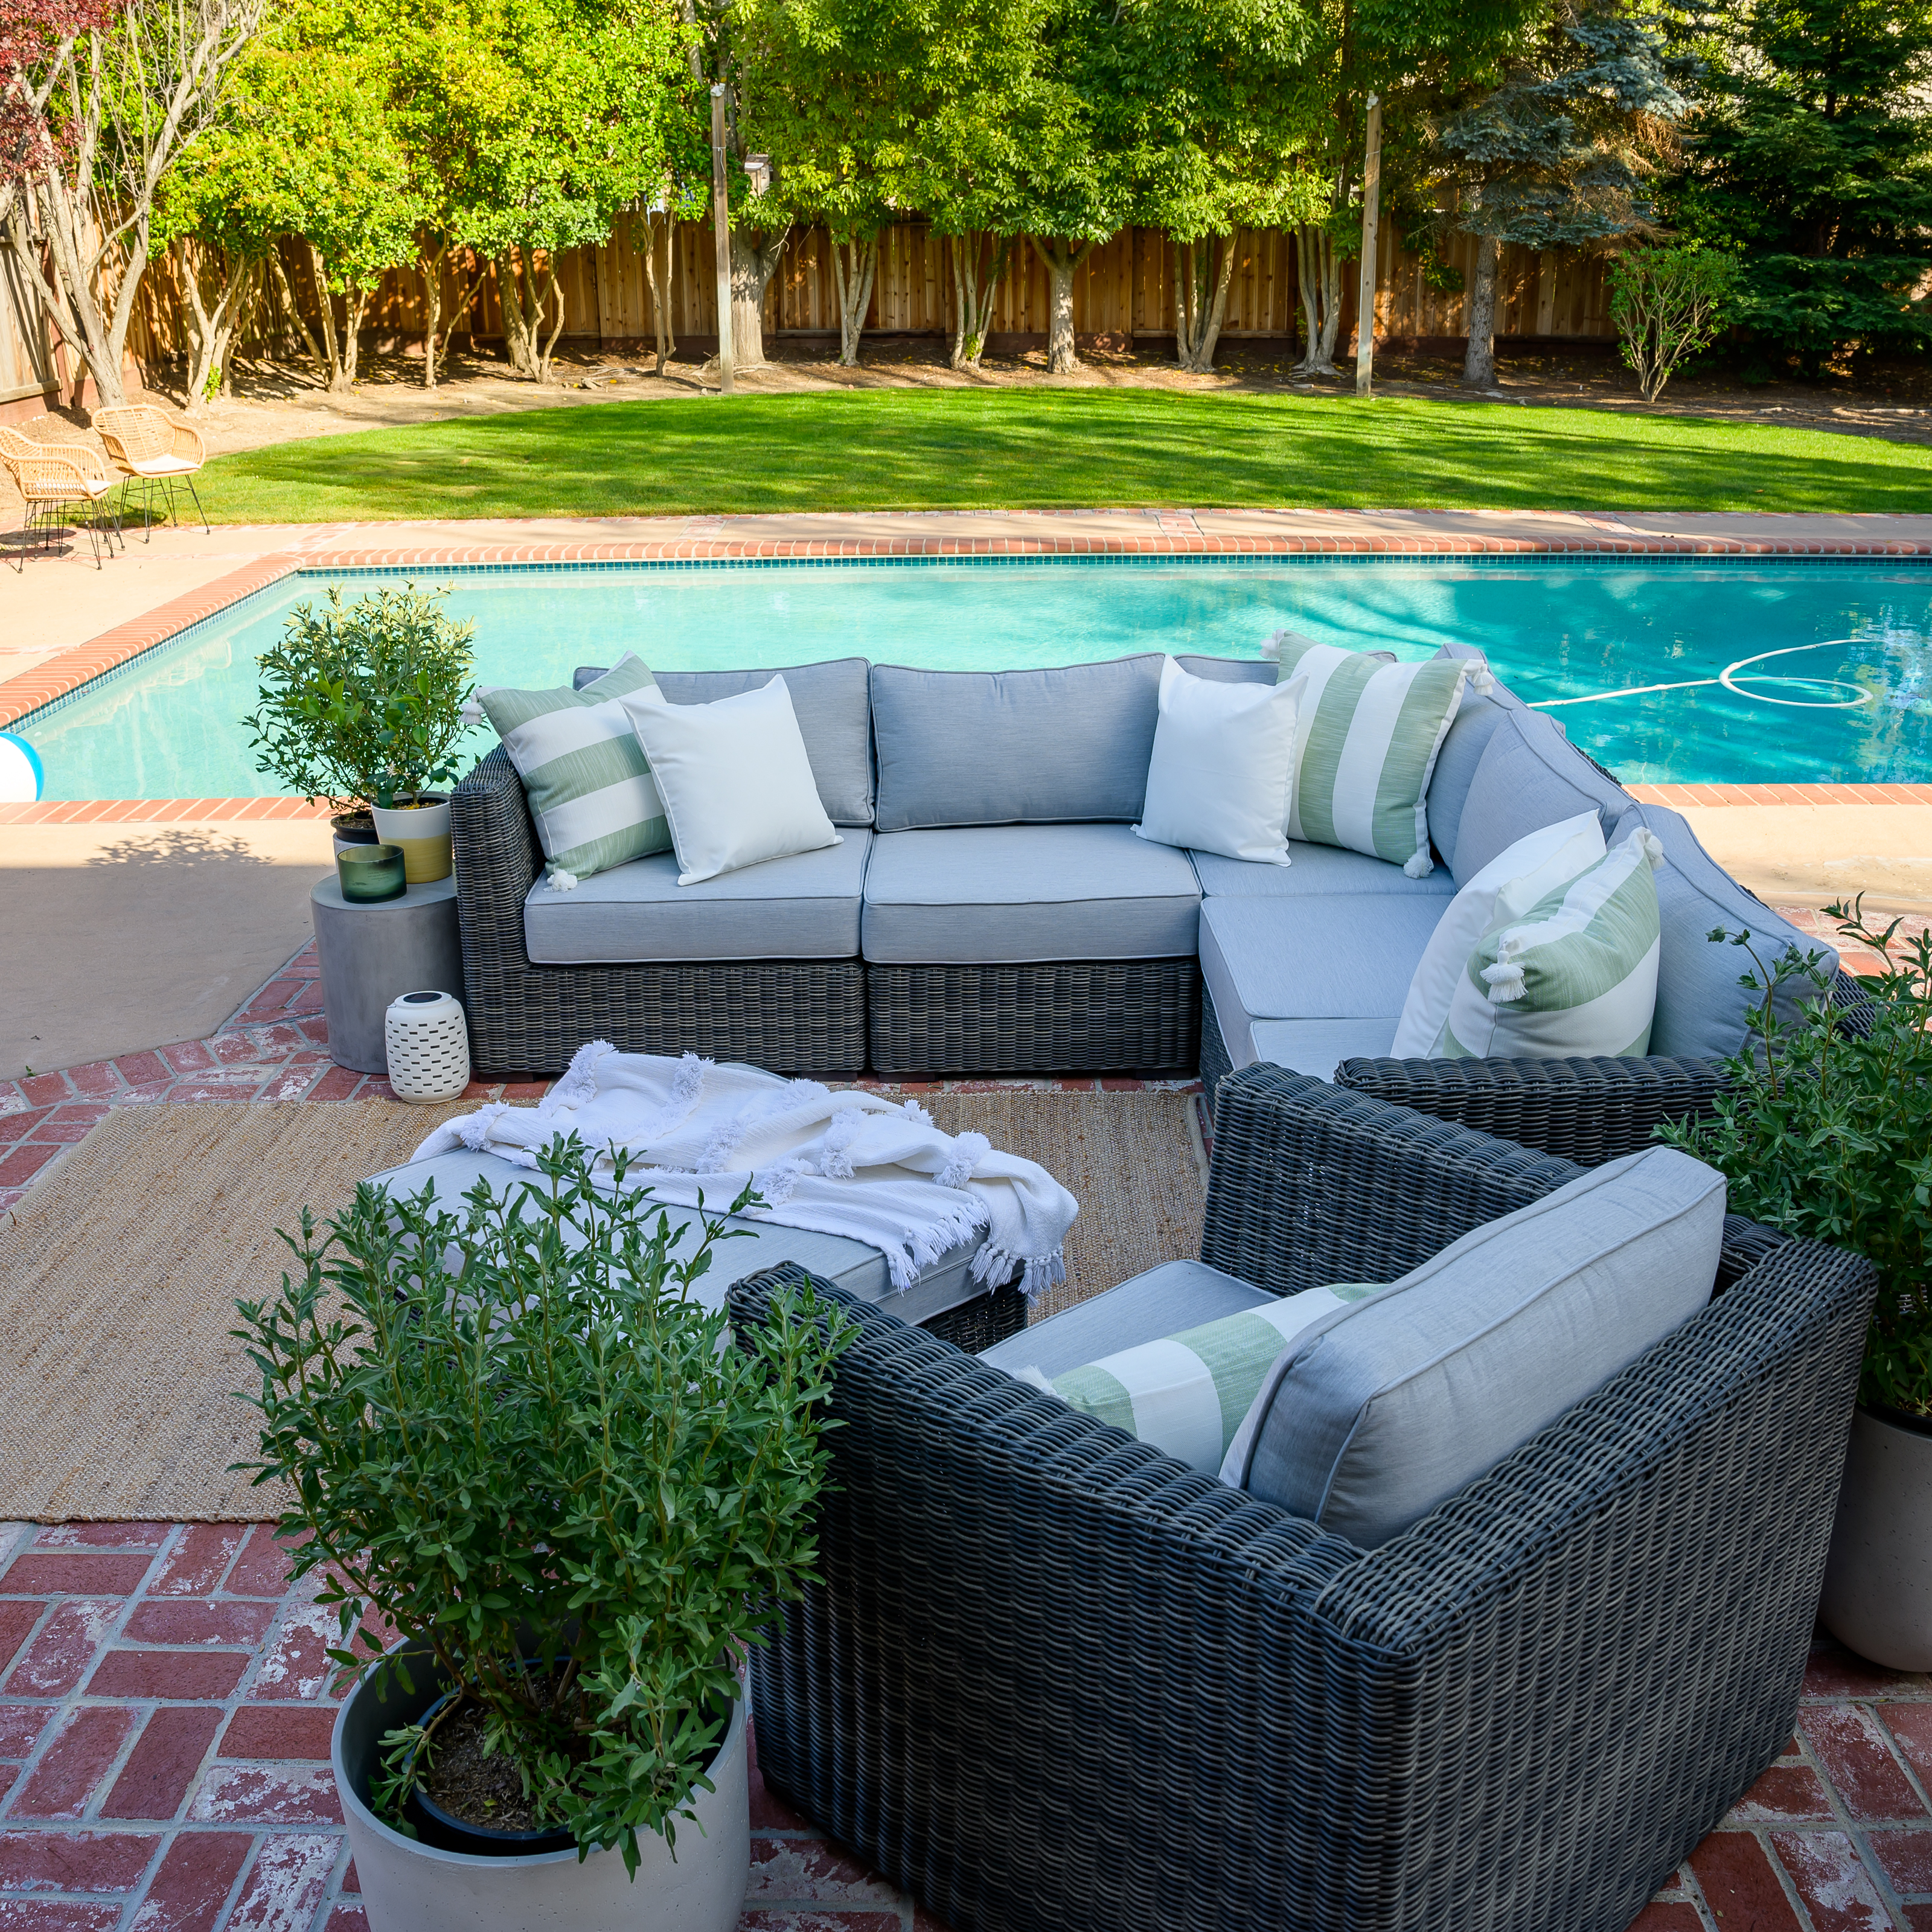 Outdoor Living Room by popular Monterey life and style blog, Haute Beauty Guide: after image of a backyard with a uncovered swimming pool, grass, and patio decorated with a jute area rug, grey wicker Ajna living sectional couch with grey cushions and white and green and white stripe throw pillows and a grey wicker Ajna living chair with grey cushions and a green and white stripe throw pillow.